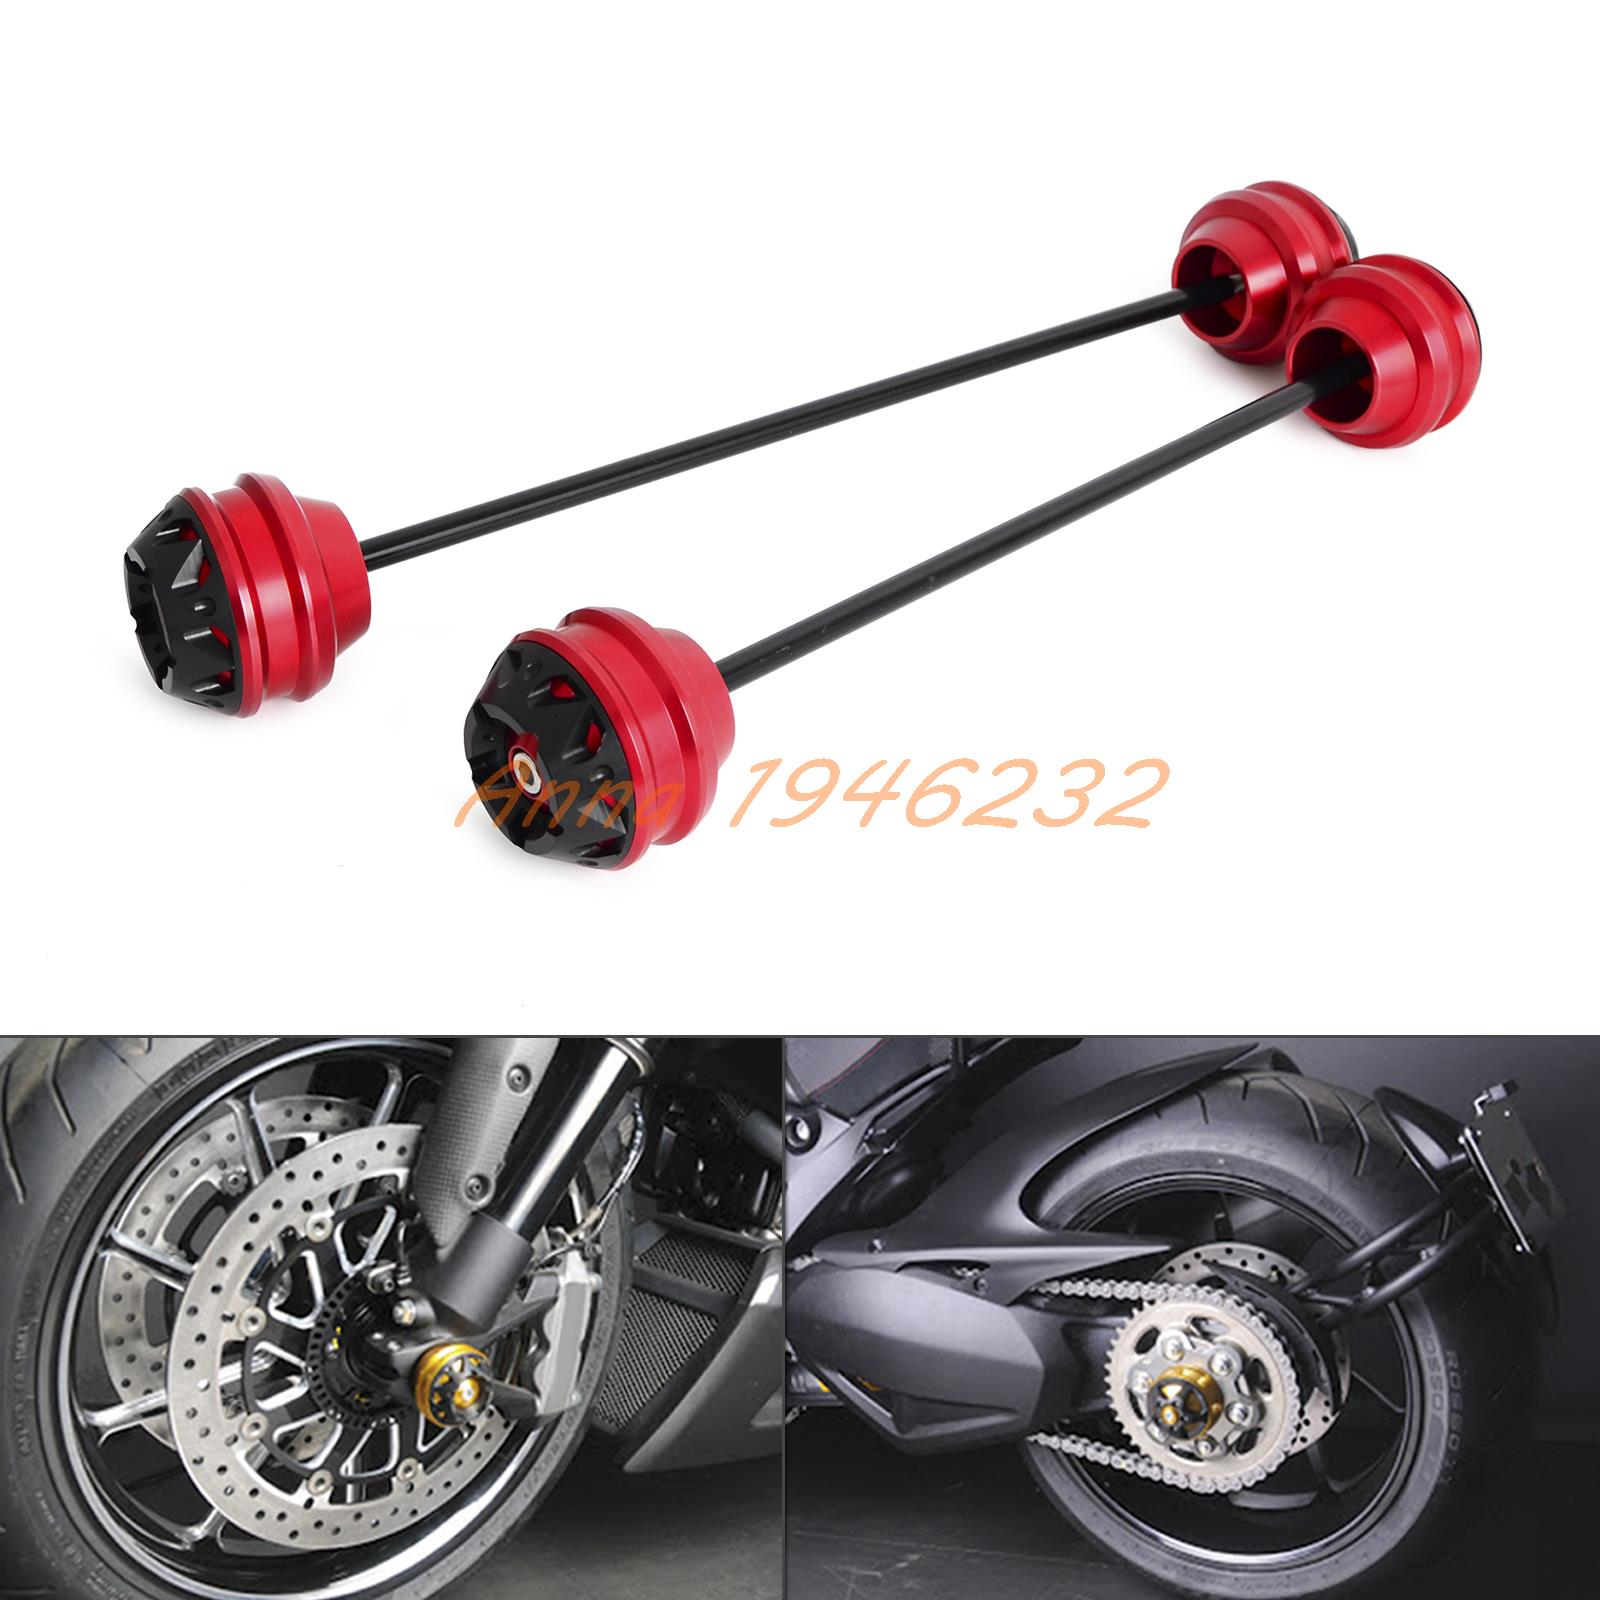 Ducati Diavel Fuse Box Wiring Library Panigale Frond Rear Axle Sliders Swingarm For All Models 2011 2016